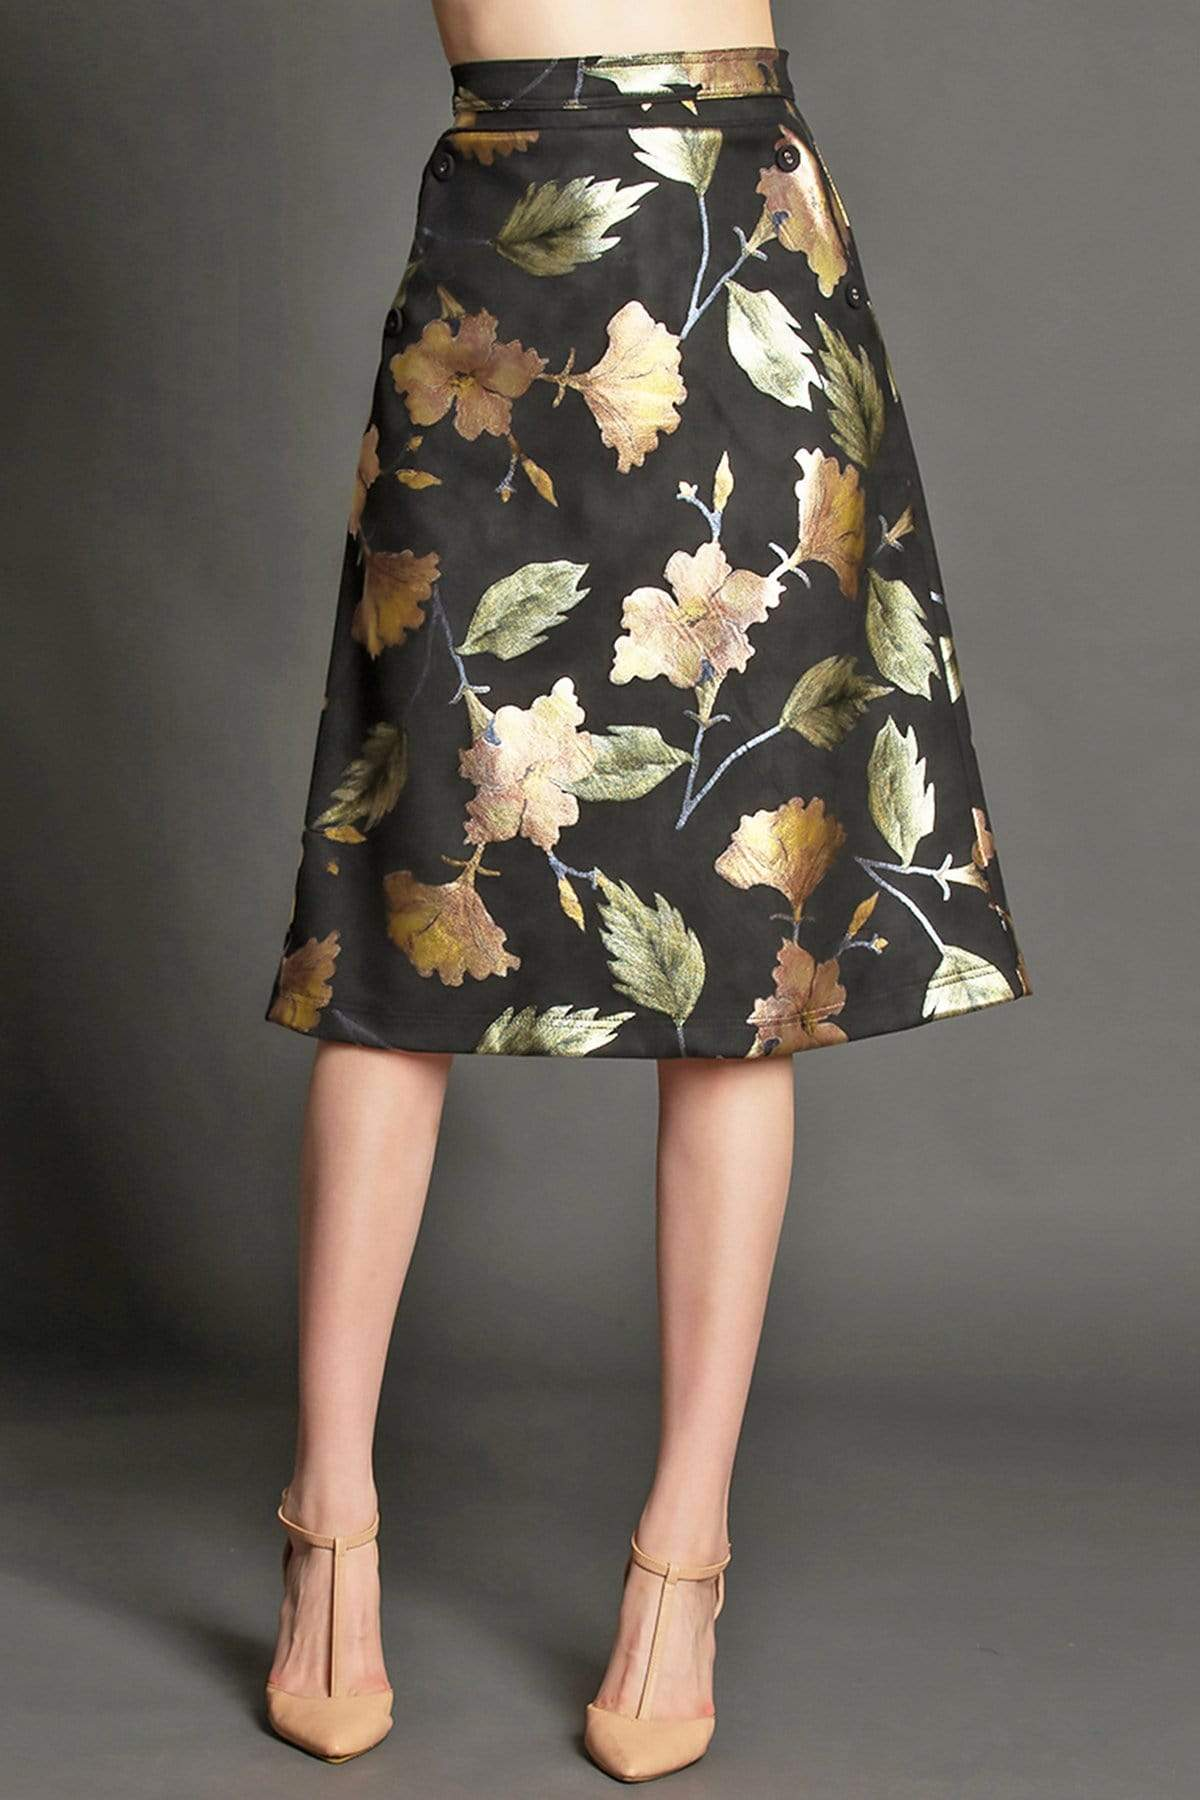 Eva Franco Skirt Mindy Skirt - Carmen's Rose